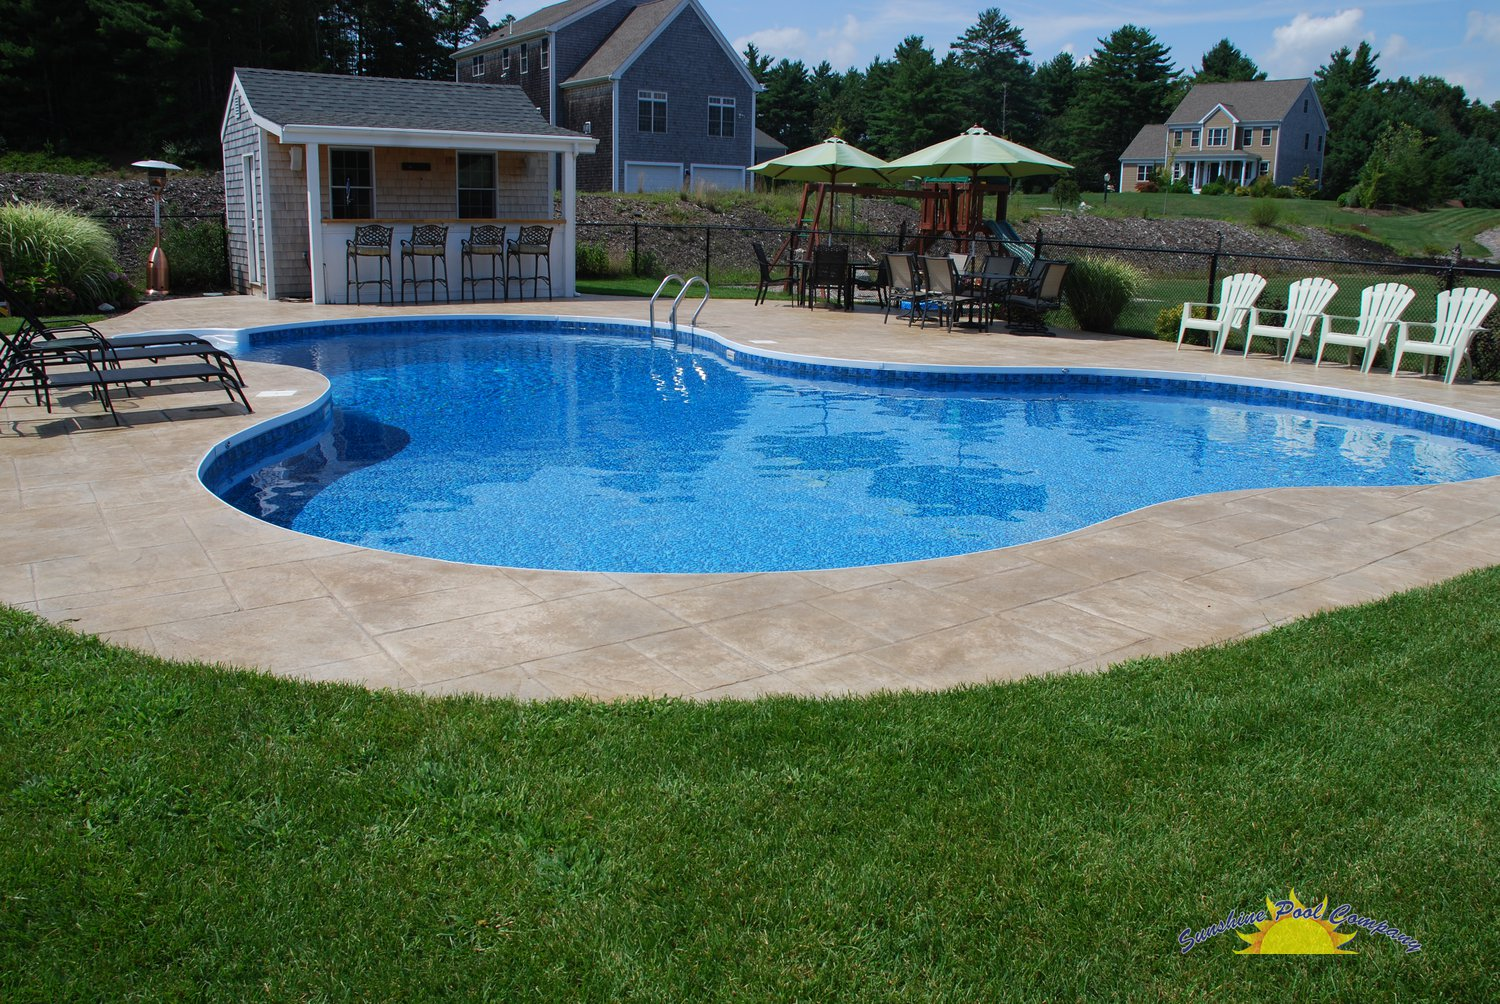 Sunshine pool company new pools in ground - Swimming pool designs galleries ...